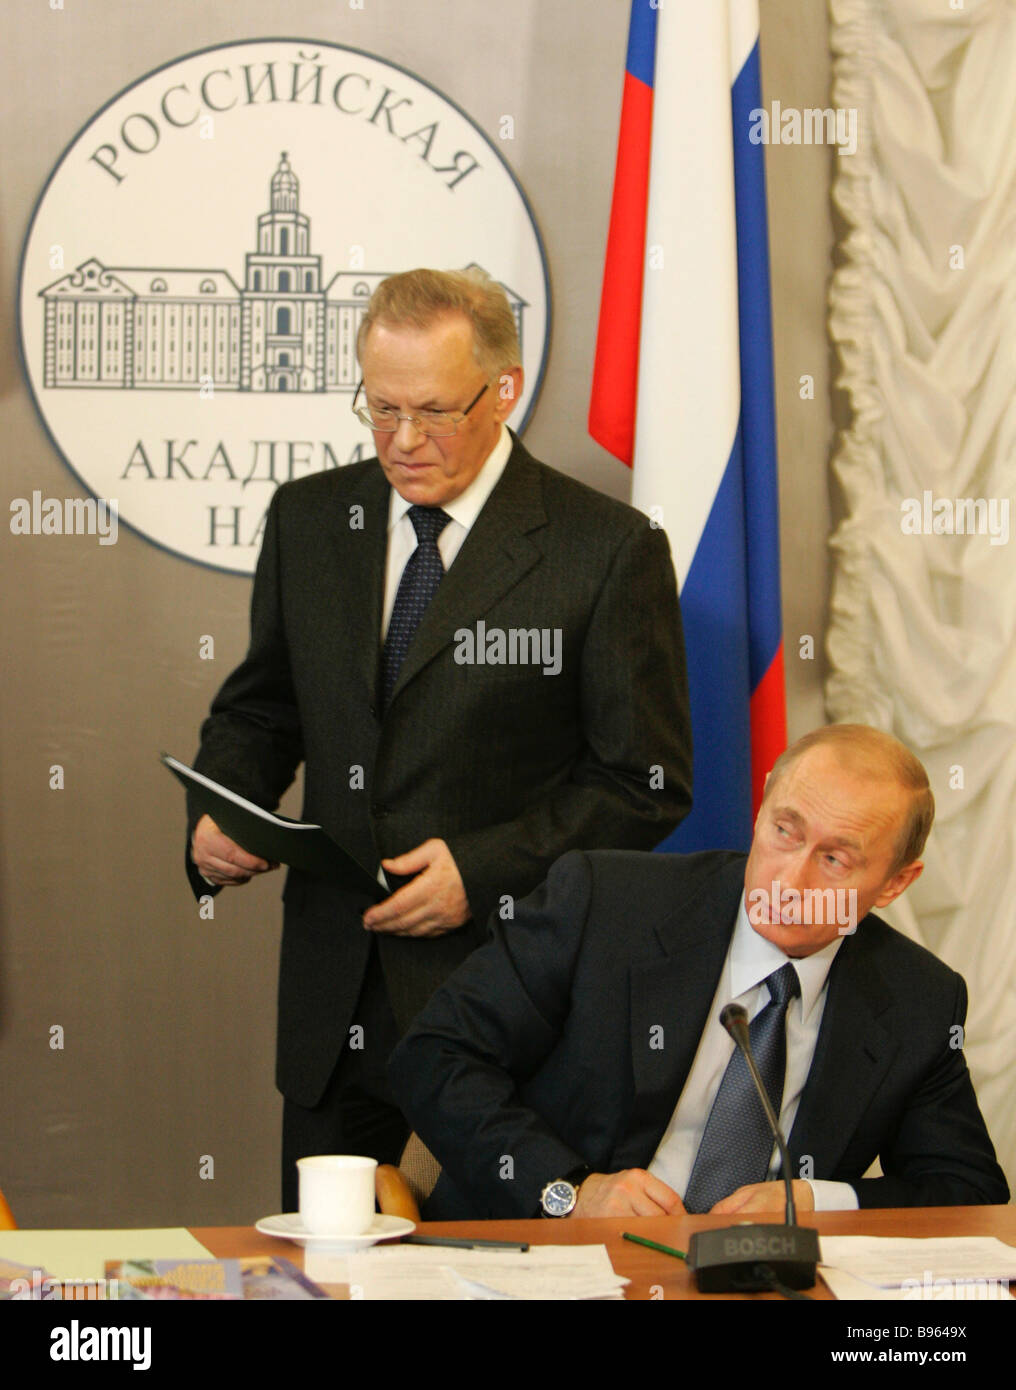 From left to right Russia s Academy of Sciences head Yury Osipov and President Vladimir Putin attending the session - Stock Image